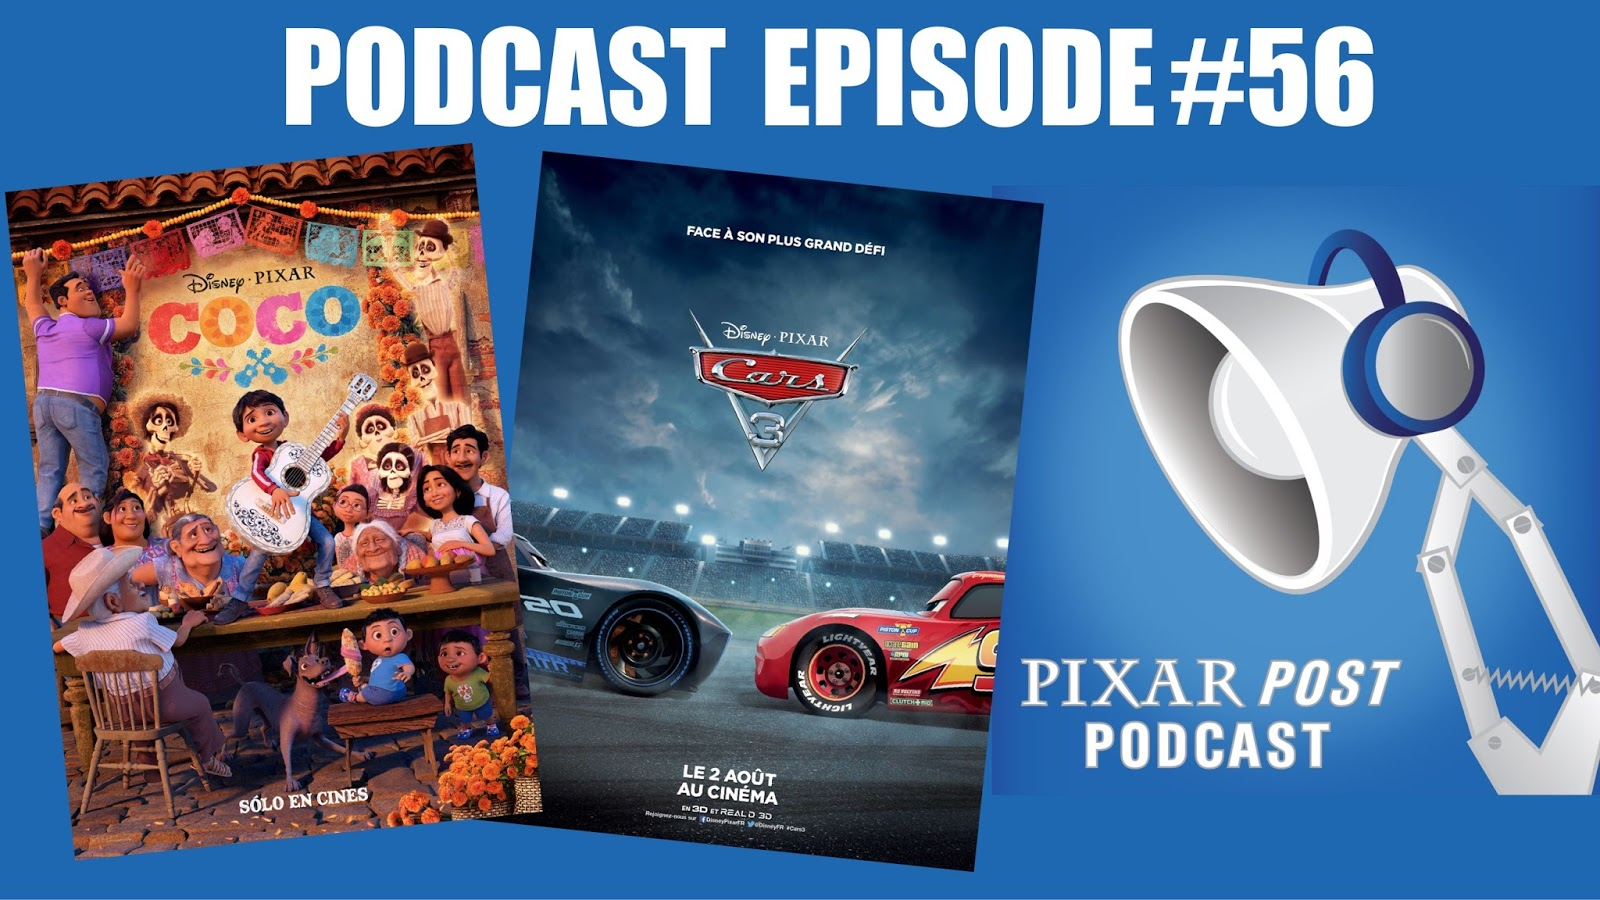 pixar post podcast 056 coco news cars 3 at the box office blu ray cover art much more. Black Bedroom Furniture Sets. Home Design Ideas